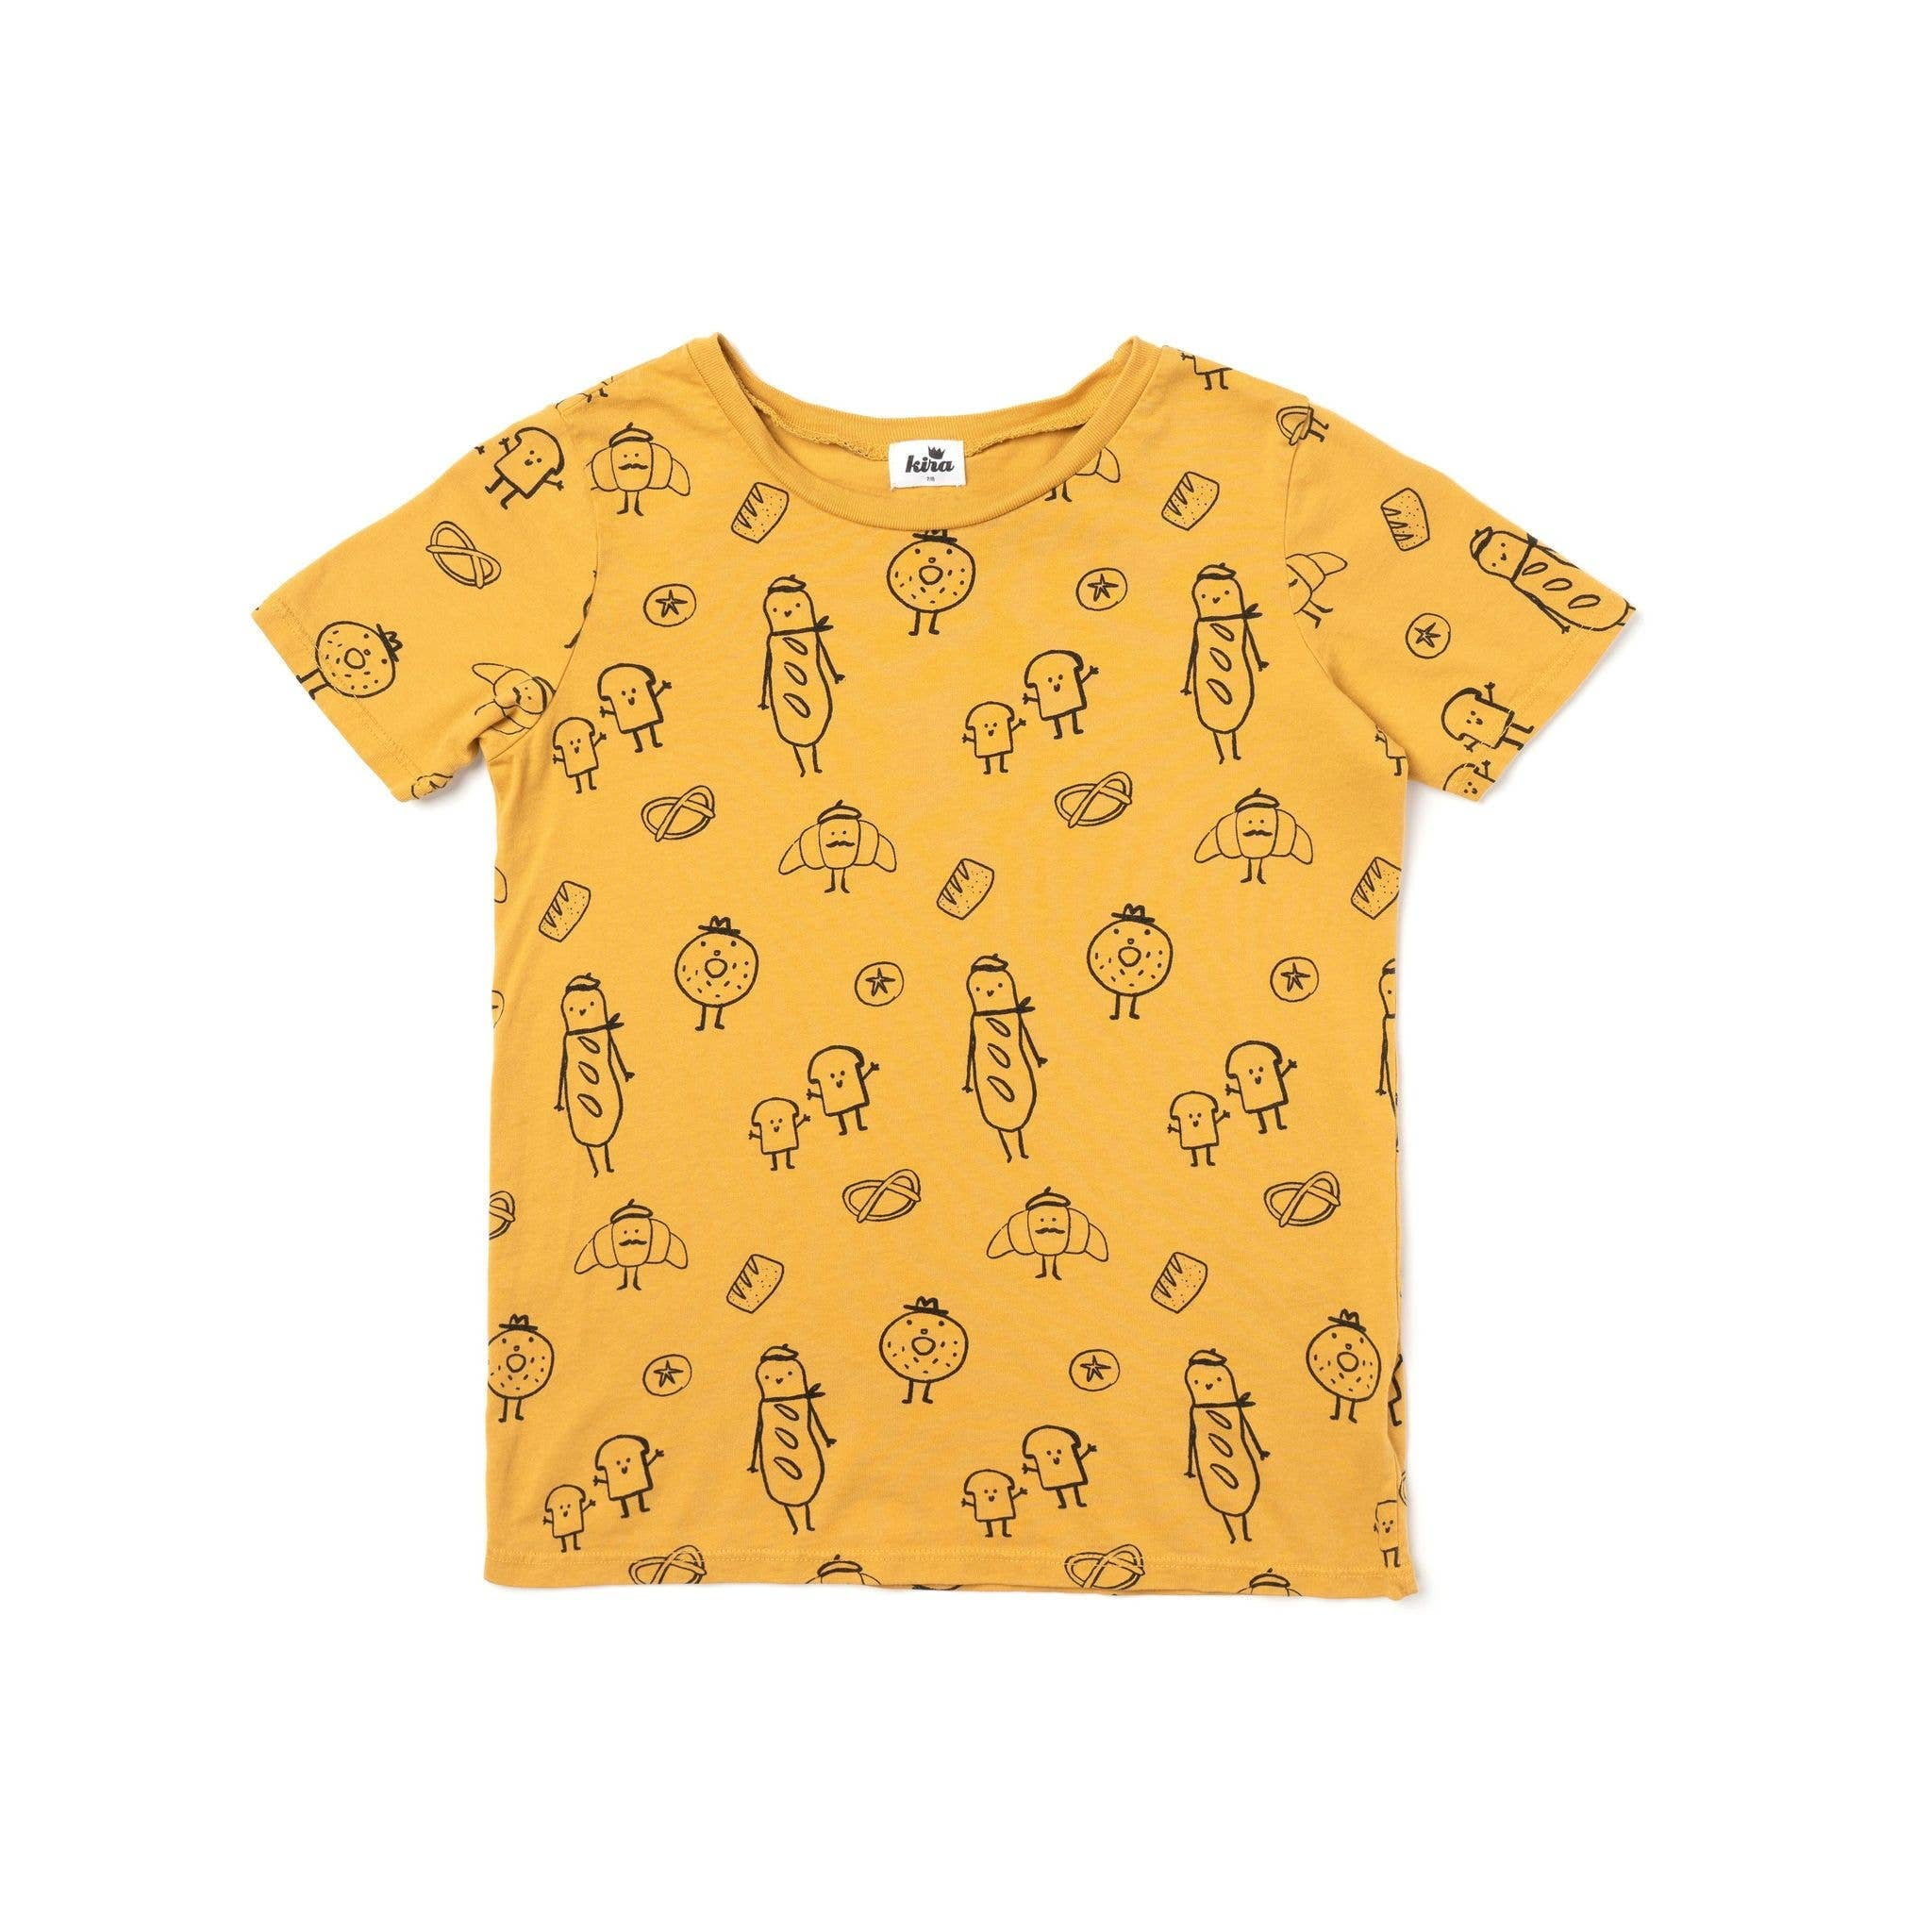 Kira - Bread Print Short Sleeve T-shirt, Golden